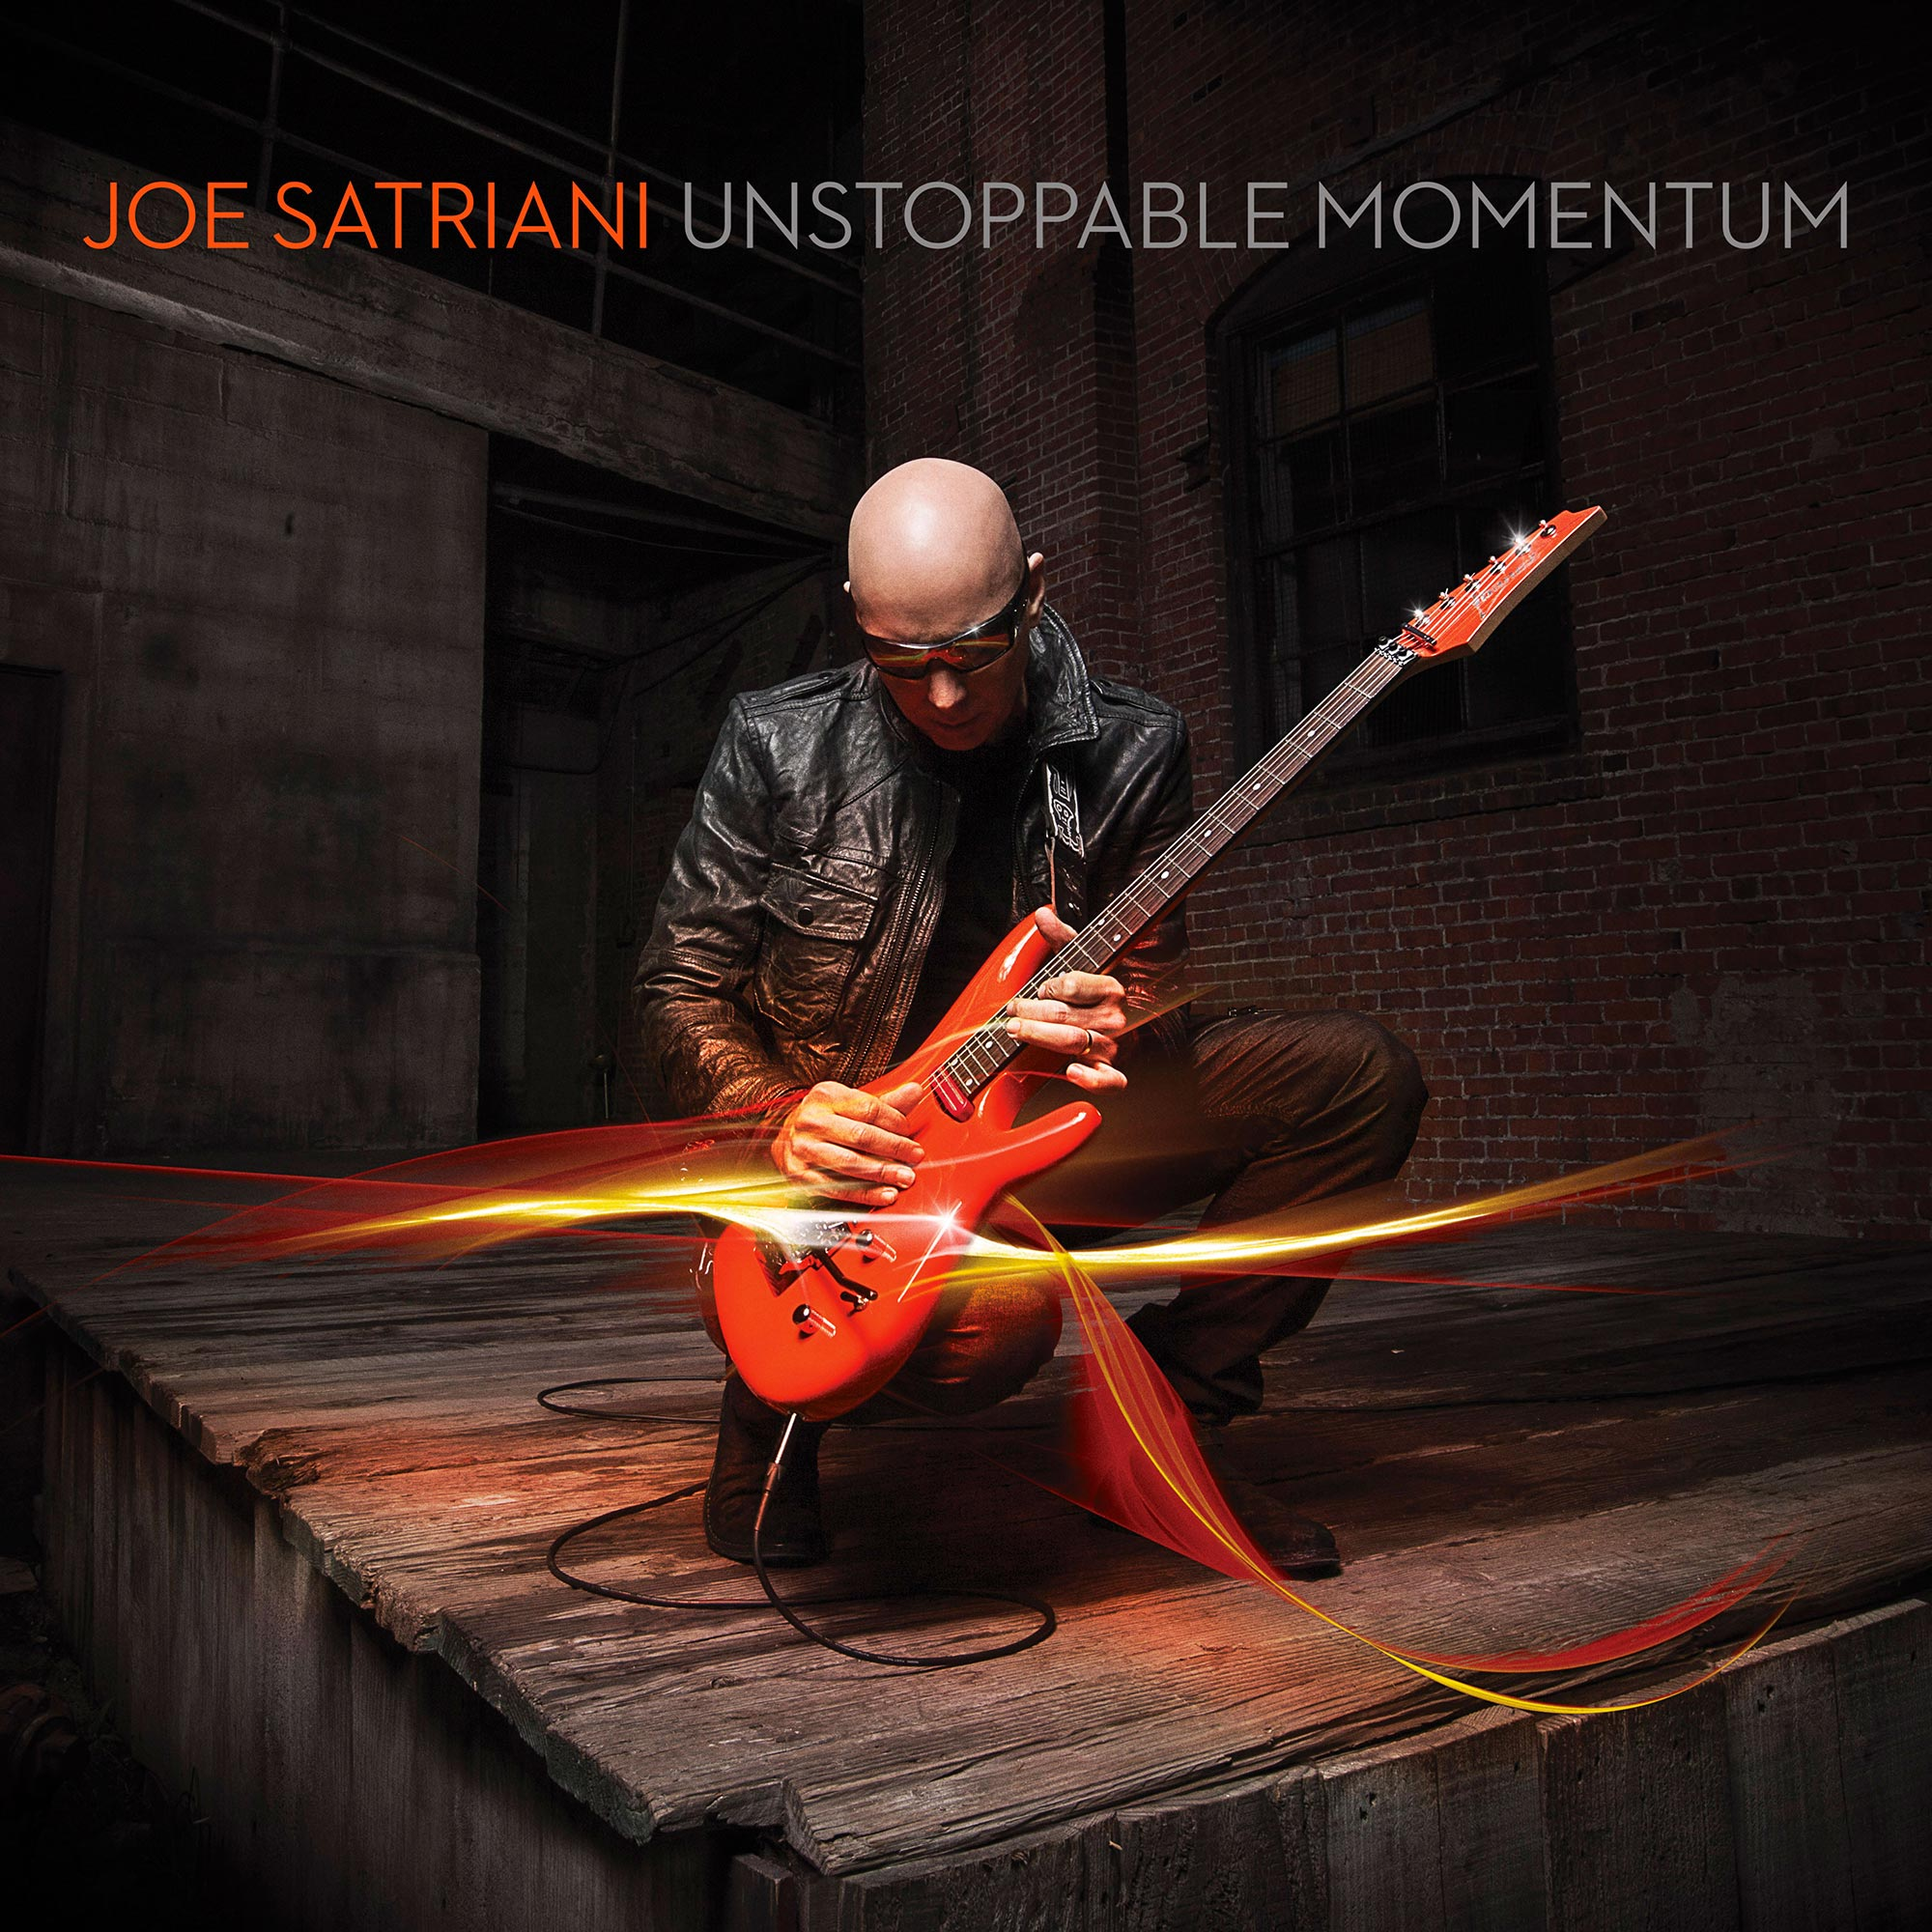 Joe Satriani Unstoppable Momentum 2013 album CD